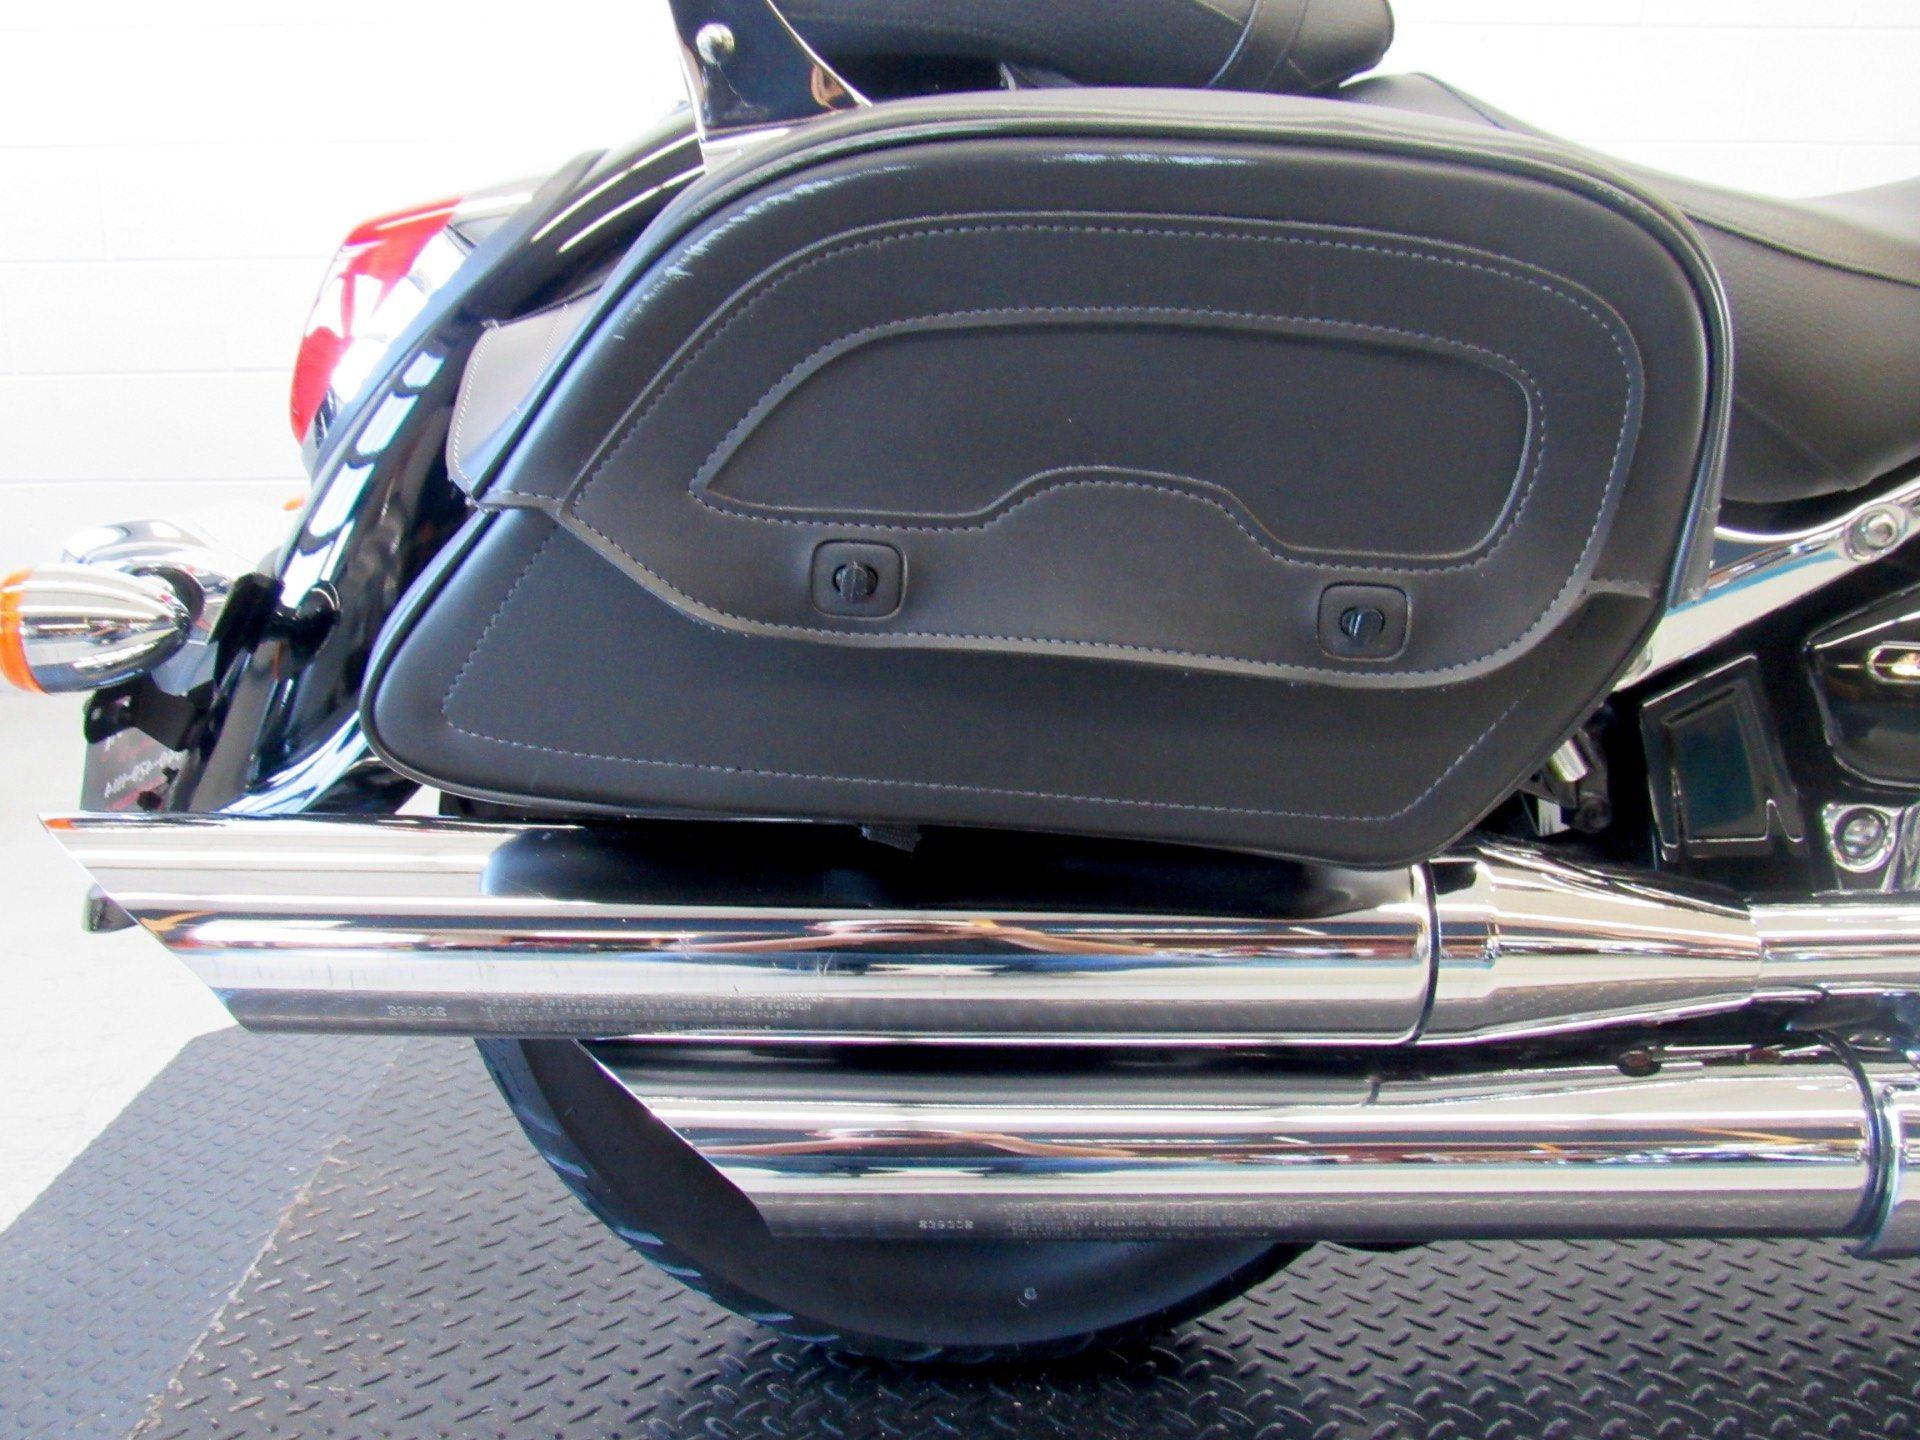 2009 Suzuki Boulevard C50 in Fredericksburg, Virginia - Photo 15